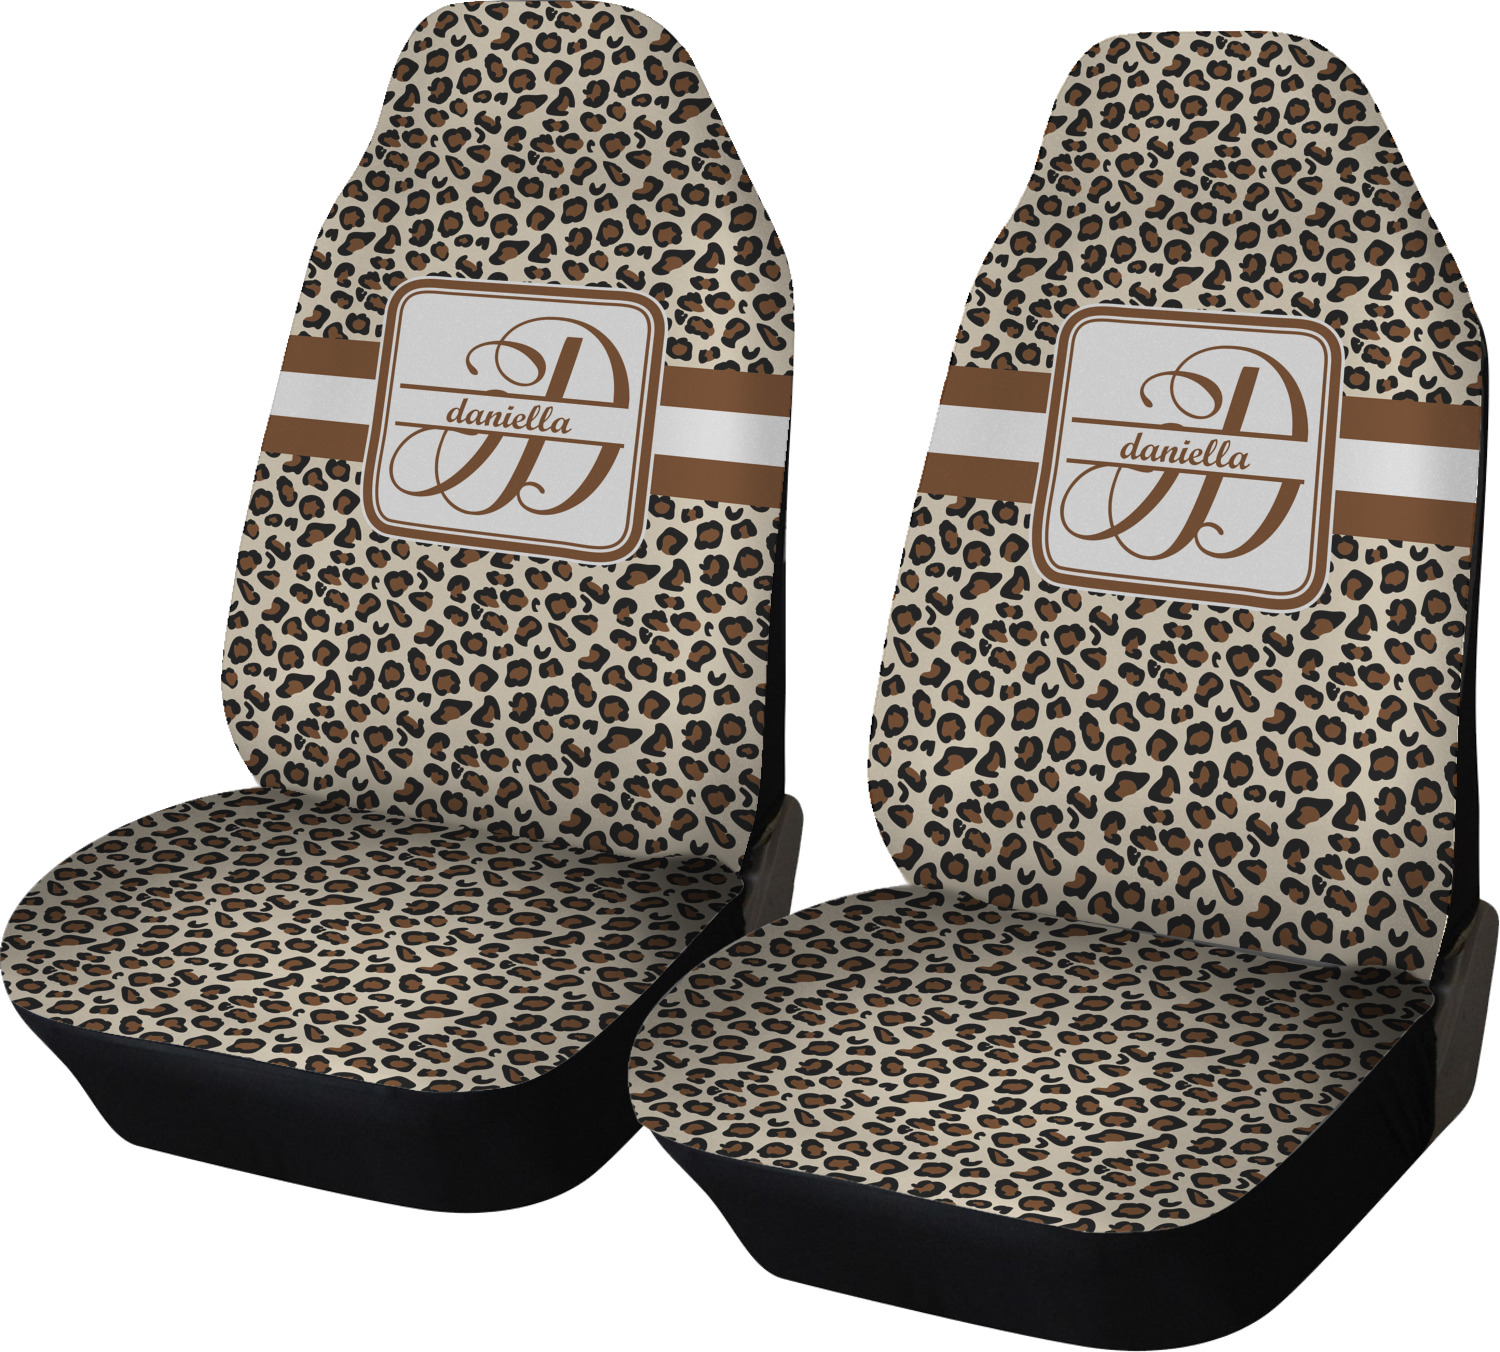 leopard print car seat covers set of two personalized youcustomizeit. Black Bedroom Furniture Sets. Home Design Ideas